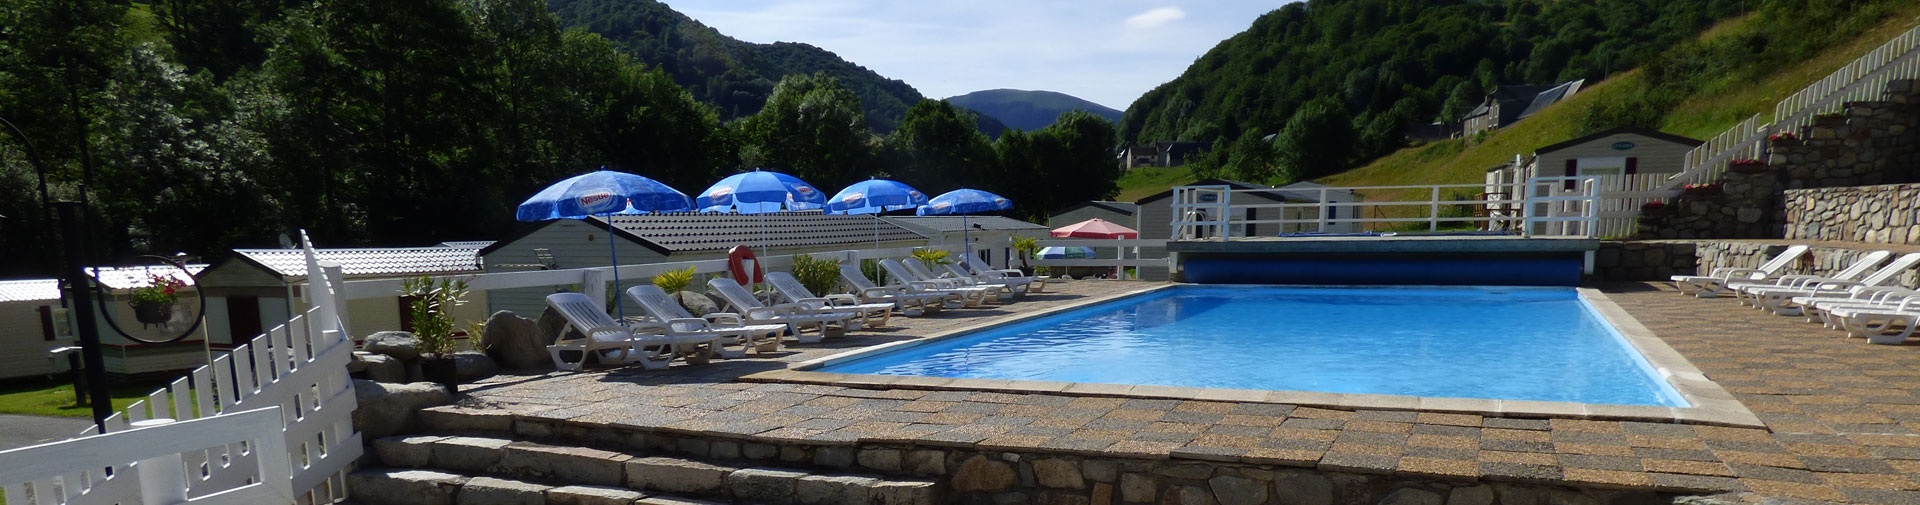 loisirs camping oree des monts hautes pyrenees